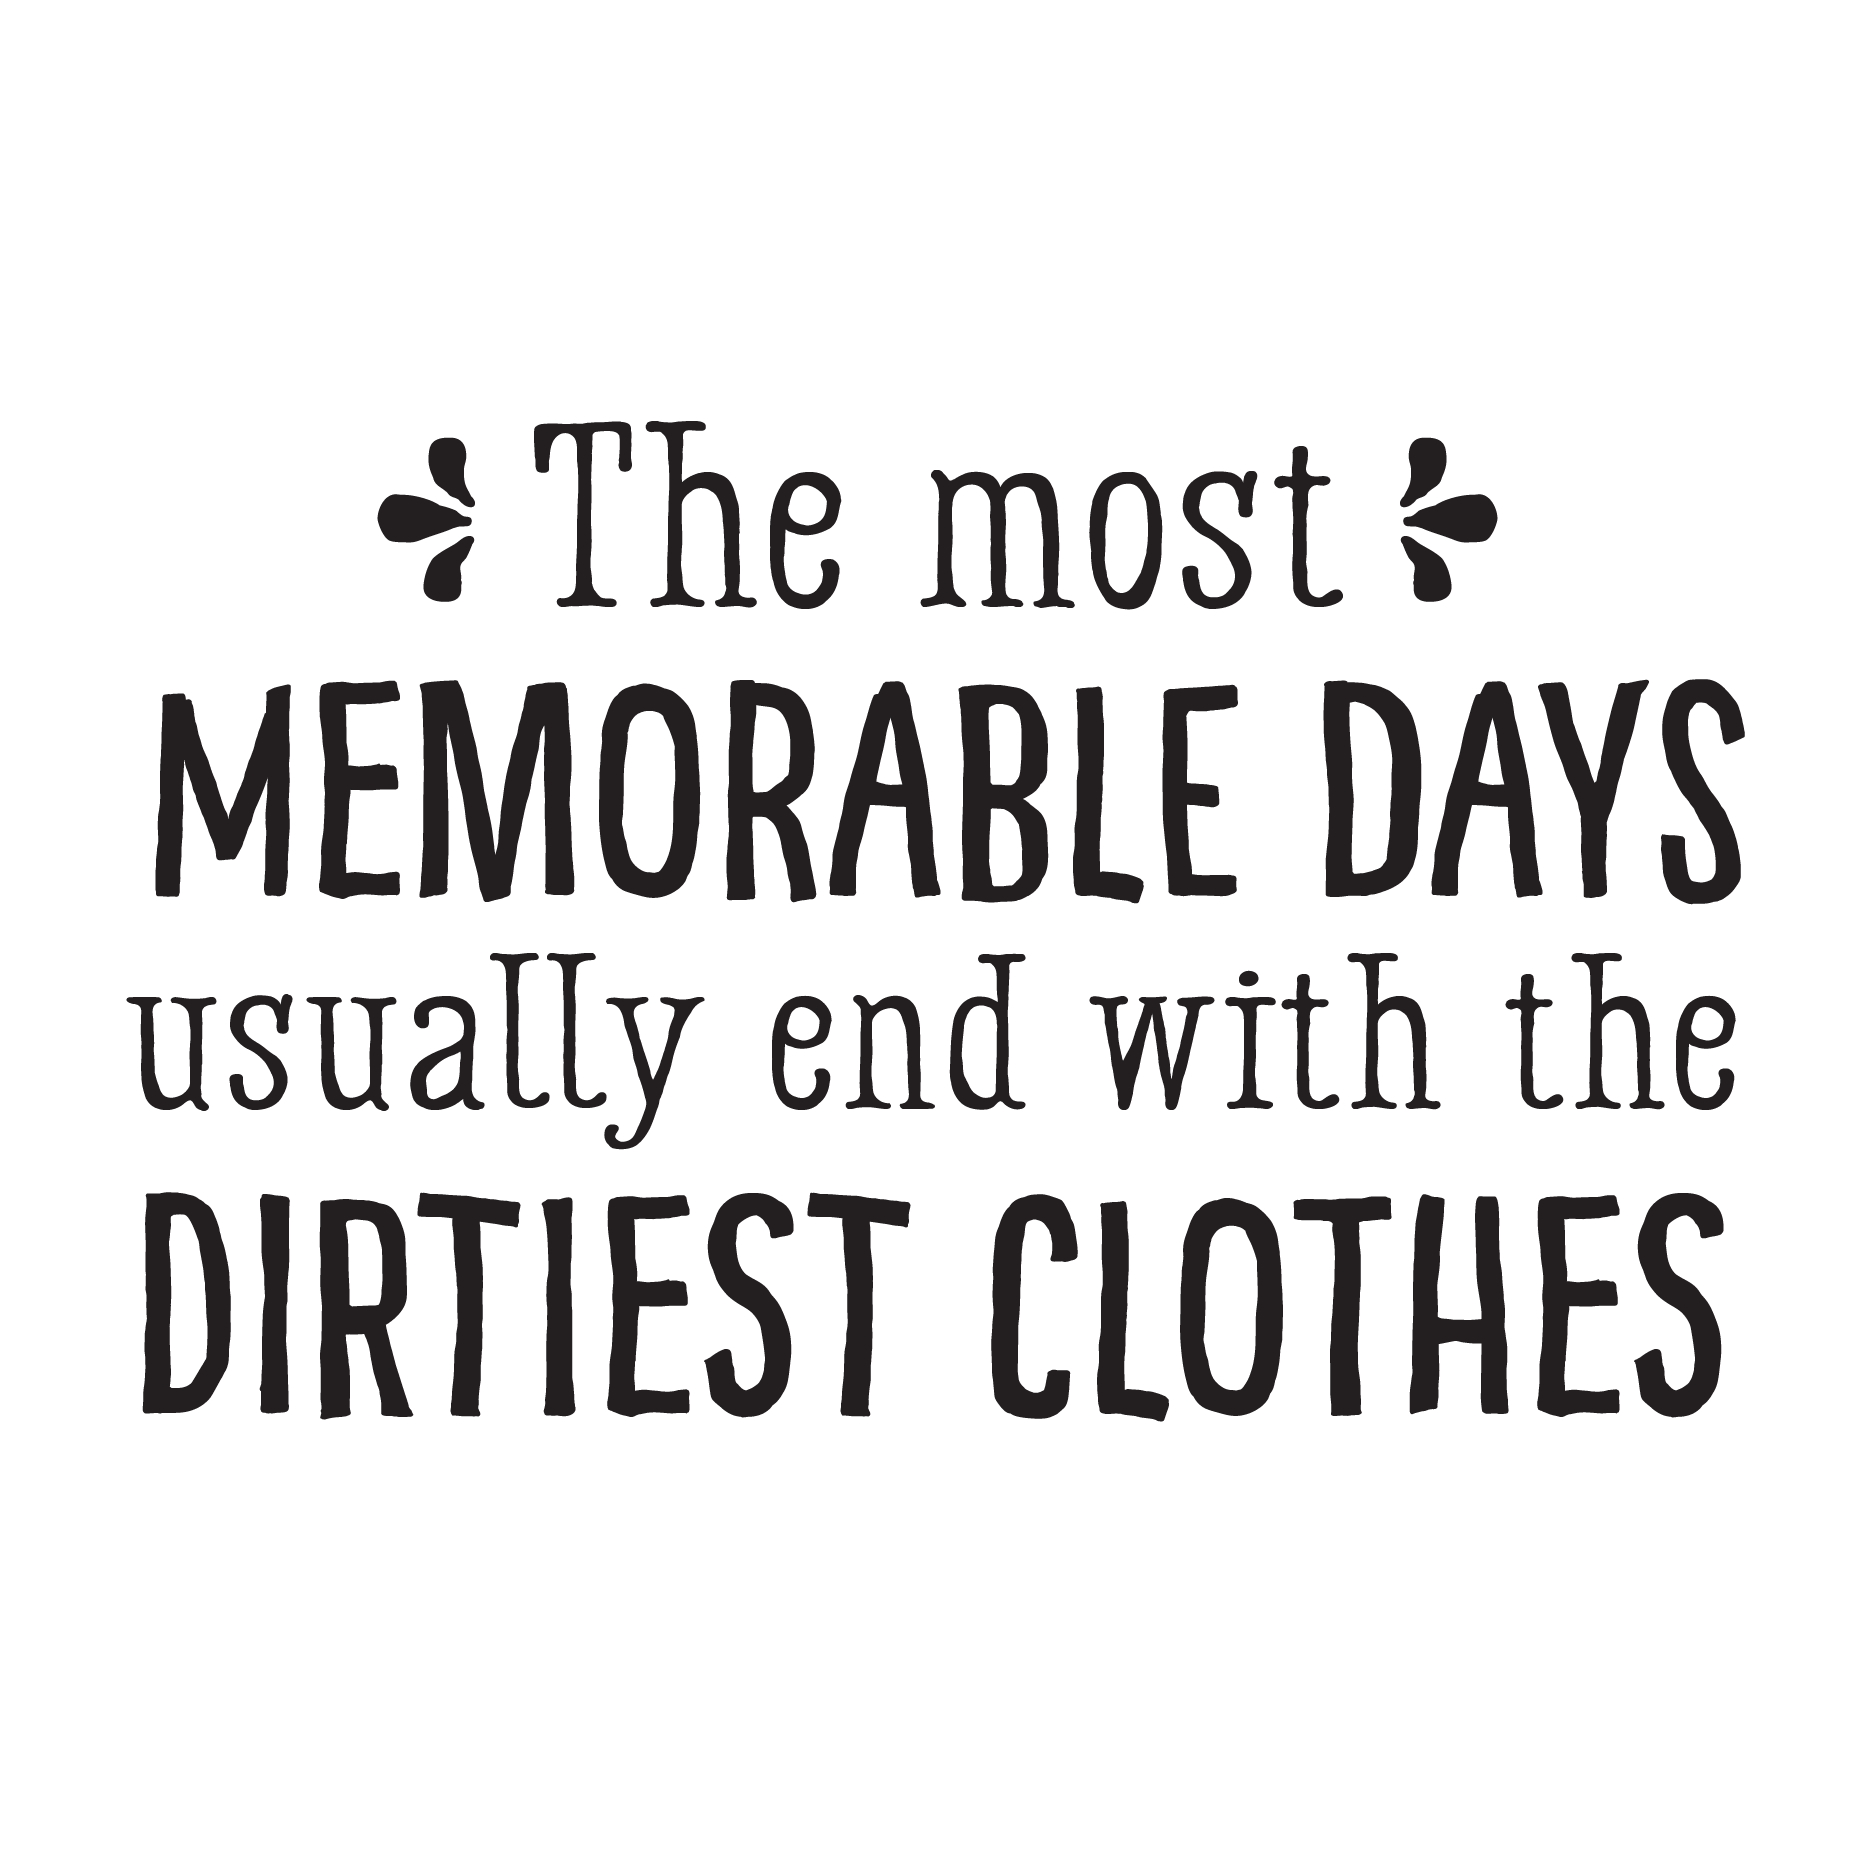 Memorable Quotes Whimsical Memorable Days Wall Quotes™ Decal  Wallquotes